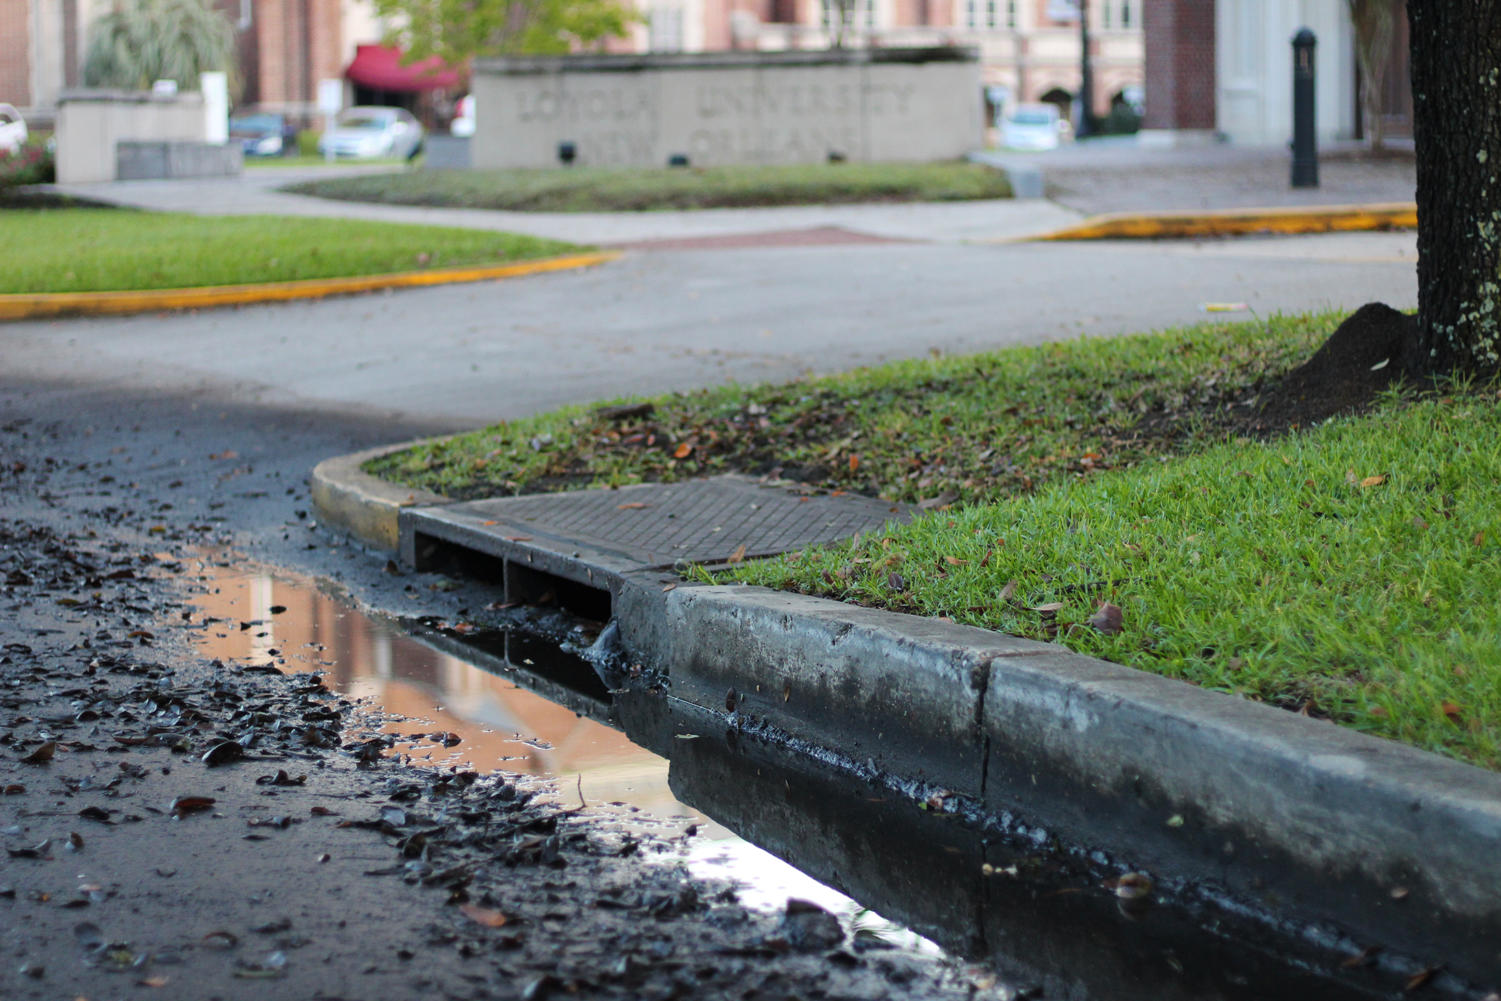 A catch basin on St. Charles Ave. near campus sits next to still water. Mayor Cantrell looks to New Orleans communities to help clean the catch basins. Photo credit: Cristian Orellana